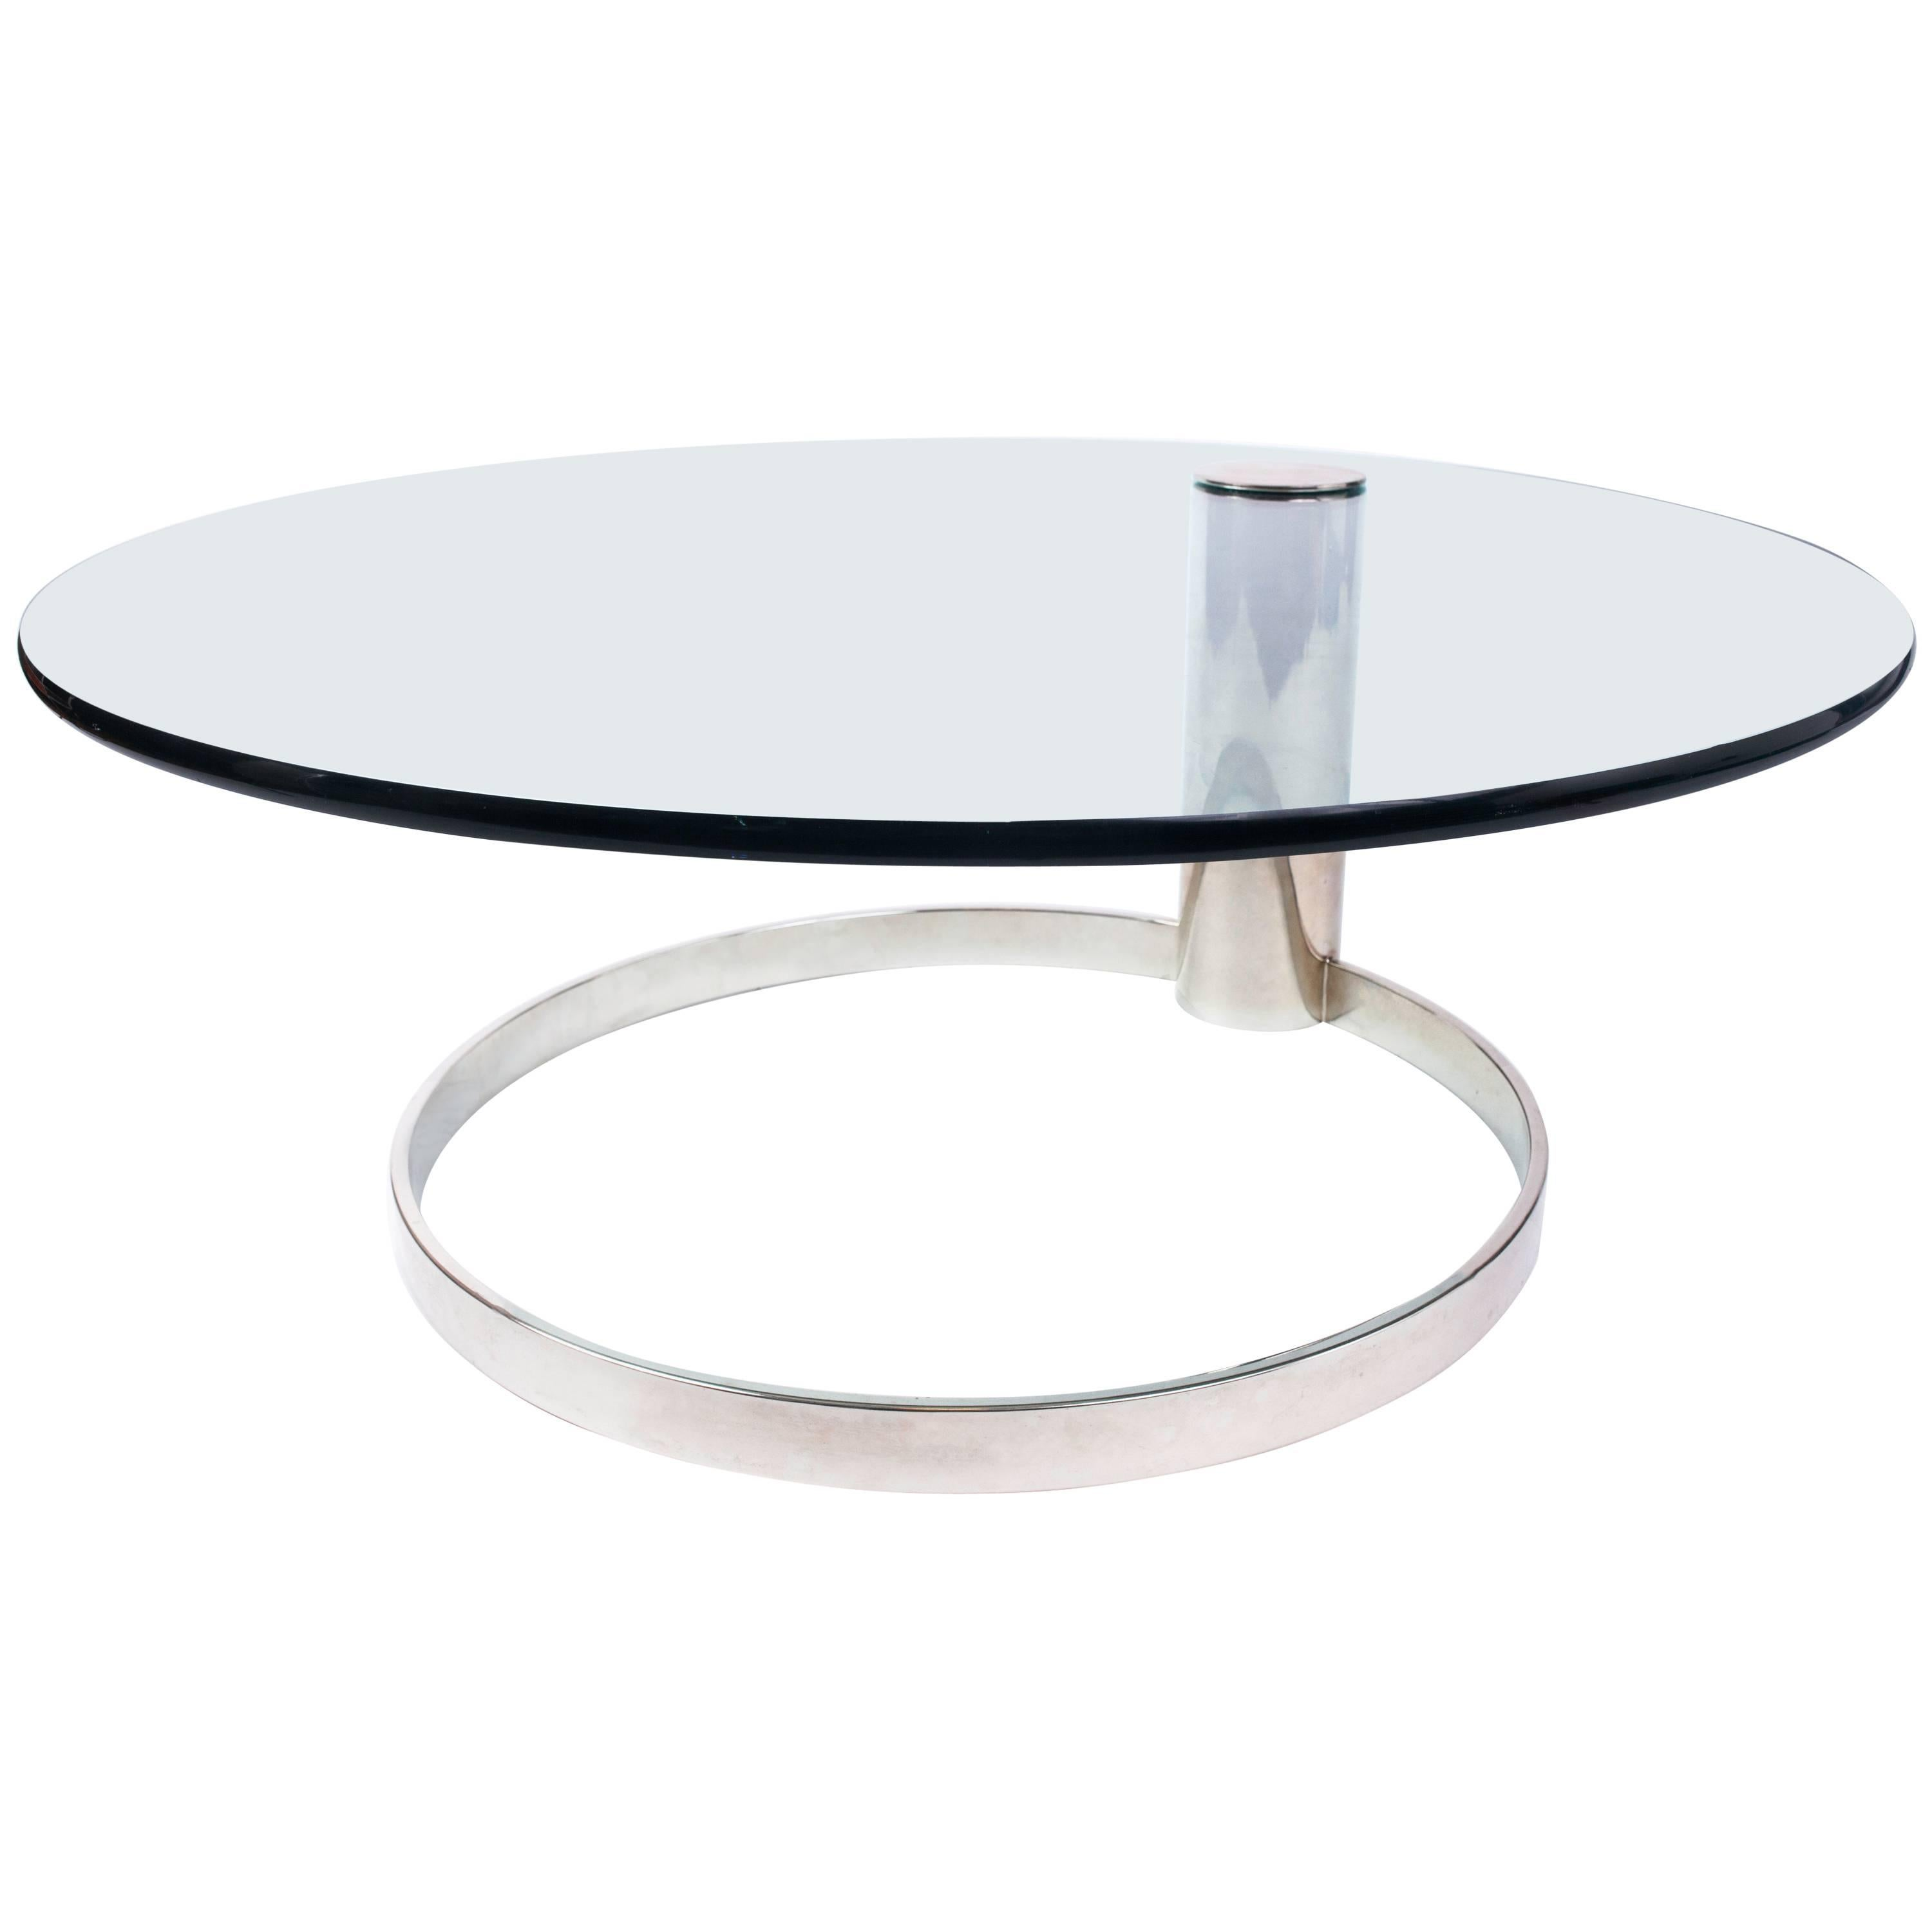 Minimalist Round Glass and Chrome Coffee Table by Leon Rosen for Pace, 1970's